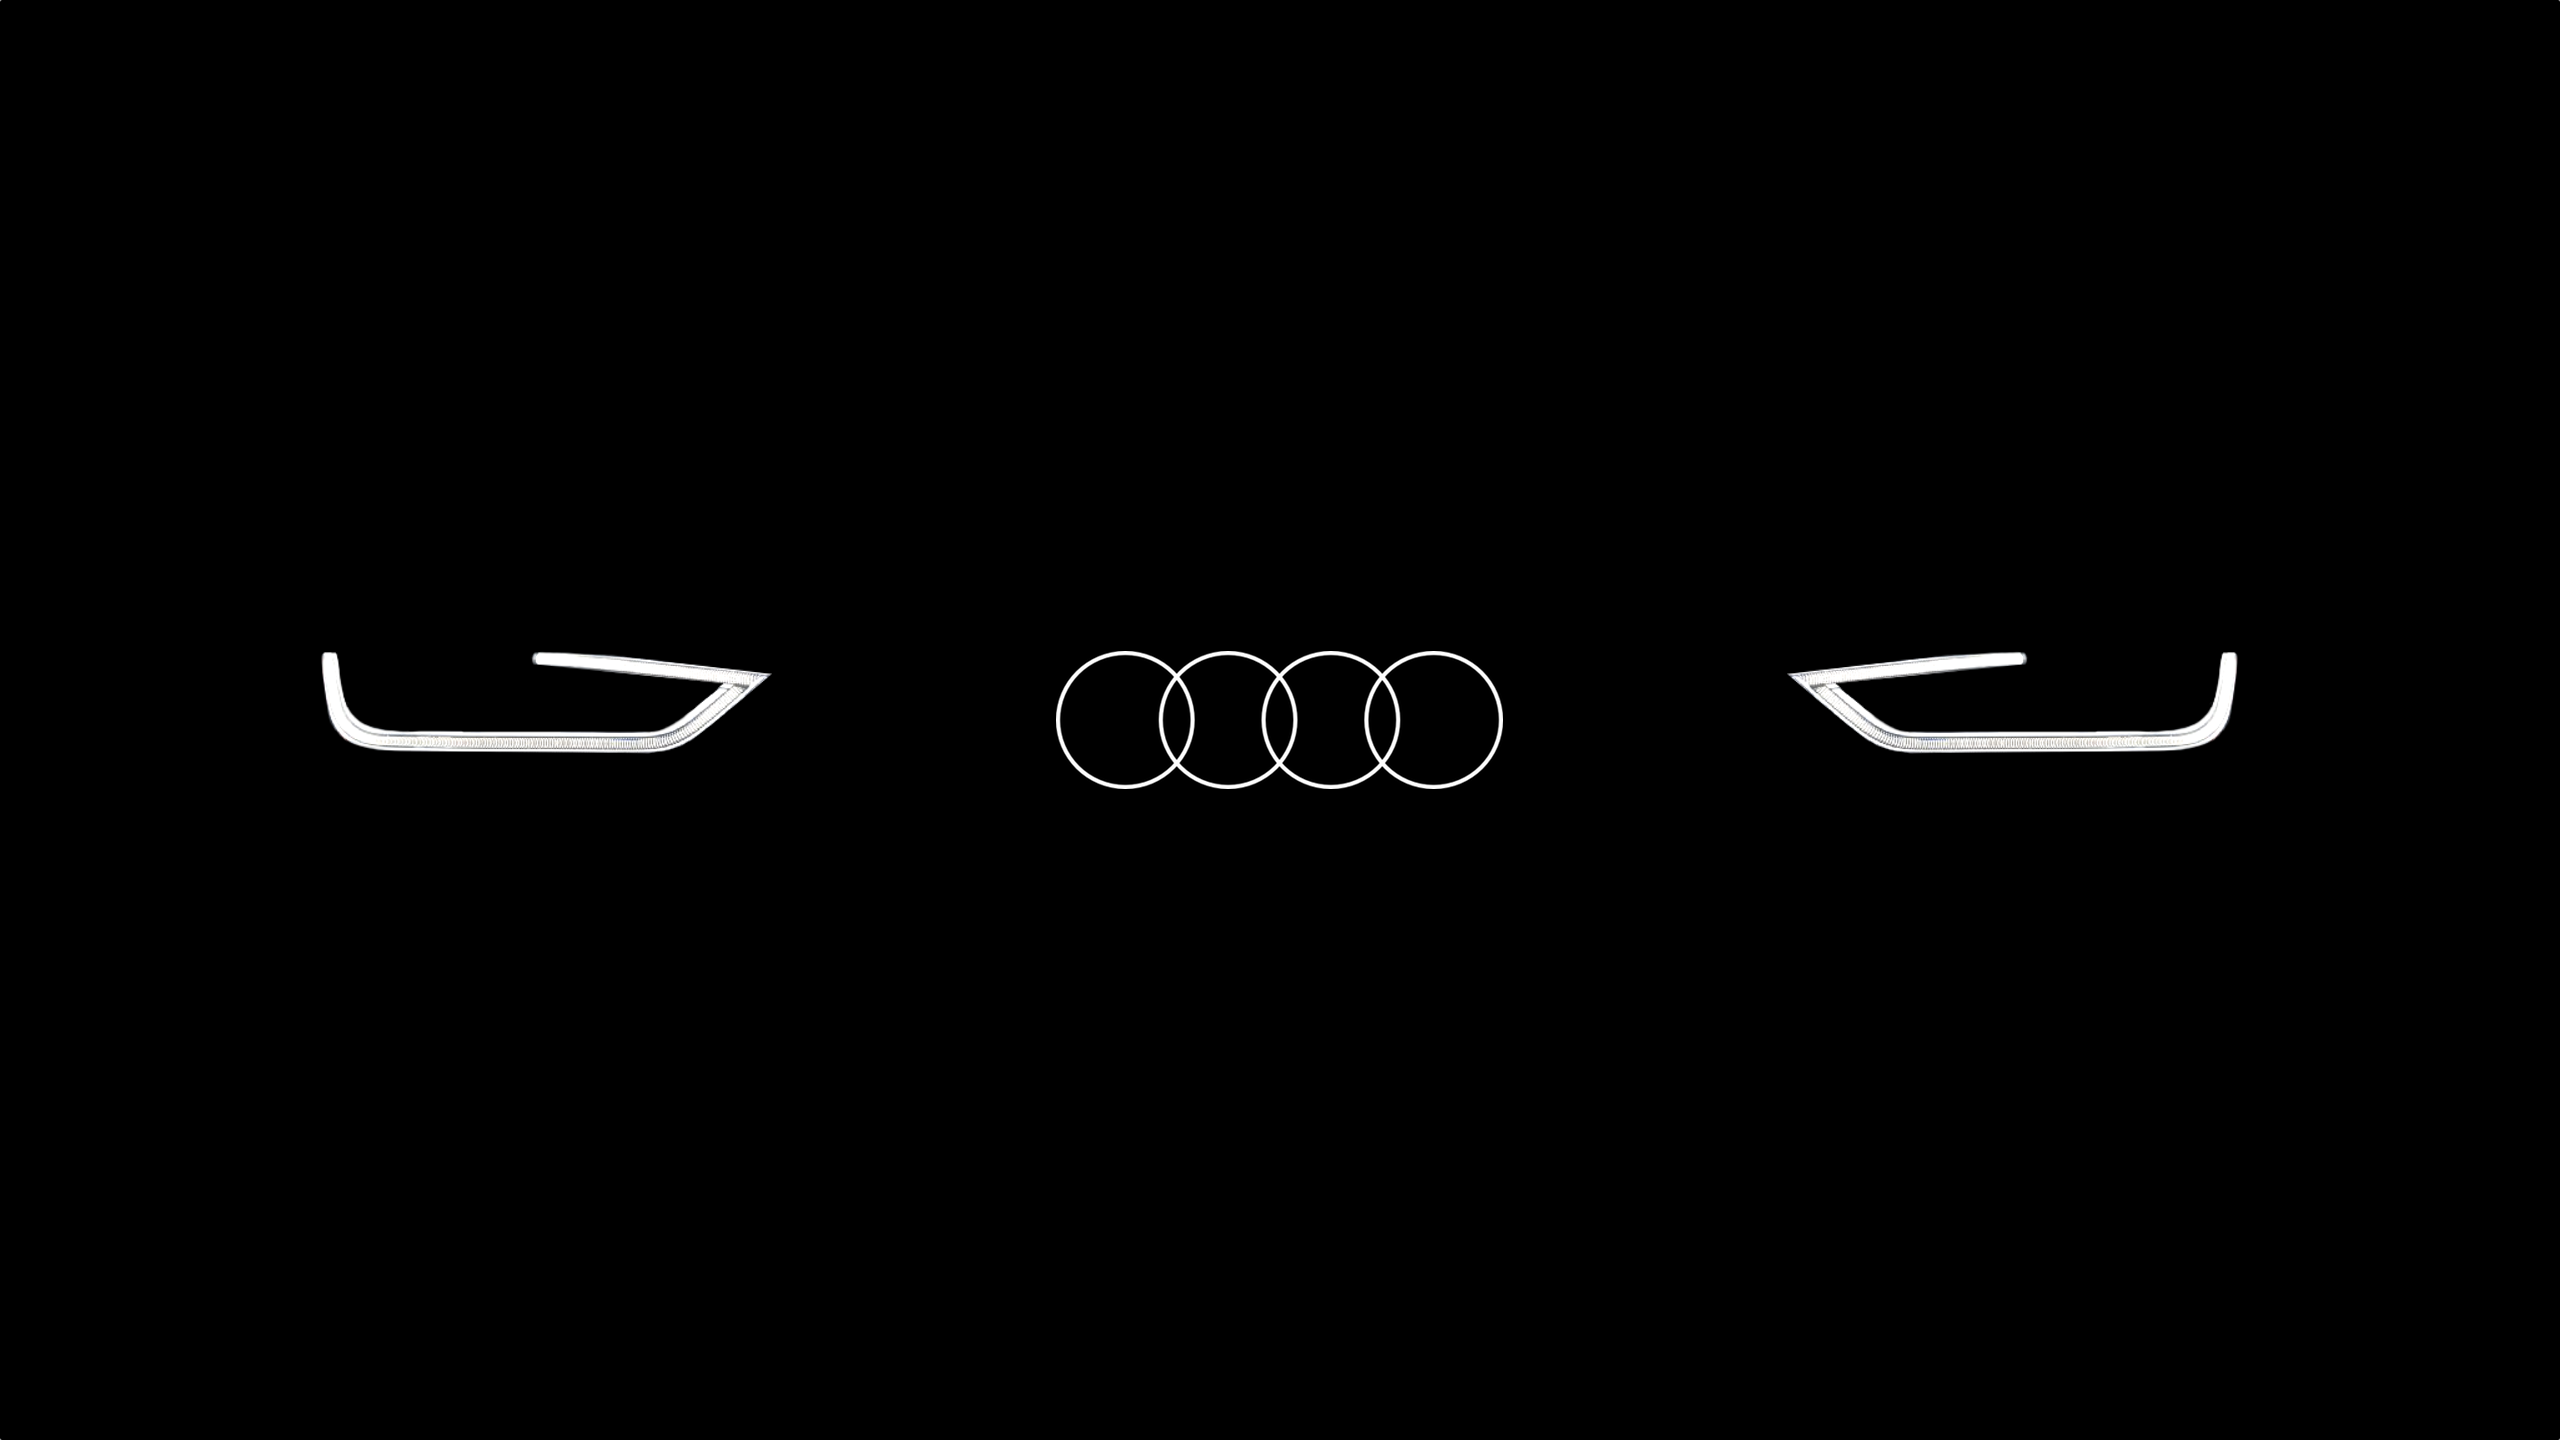 Audi Wallpaper 15 Background Carwallpapersfordesktop Org